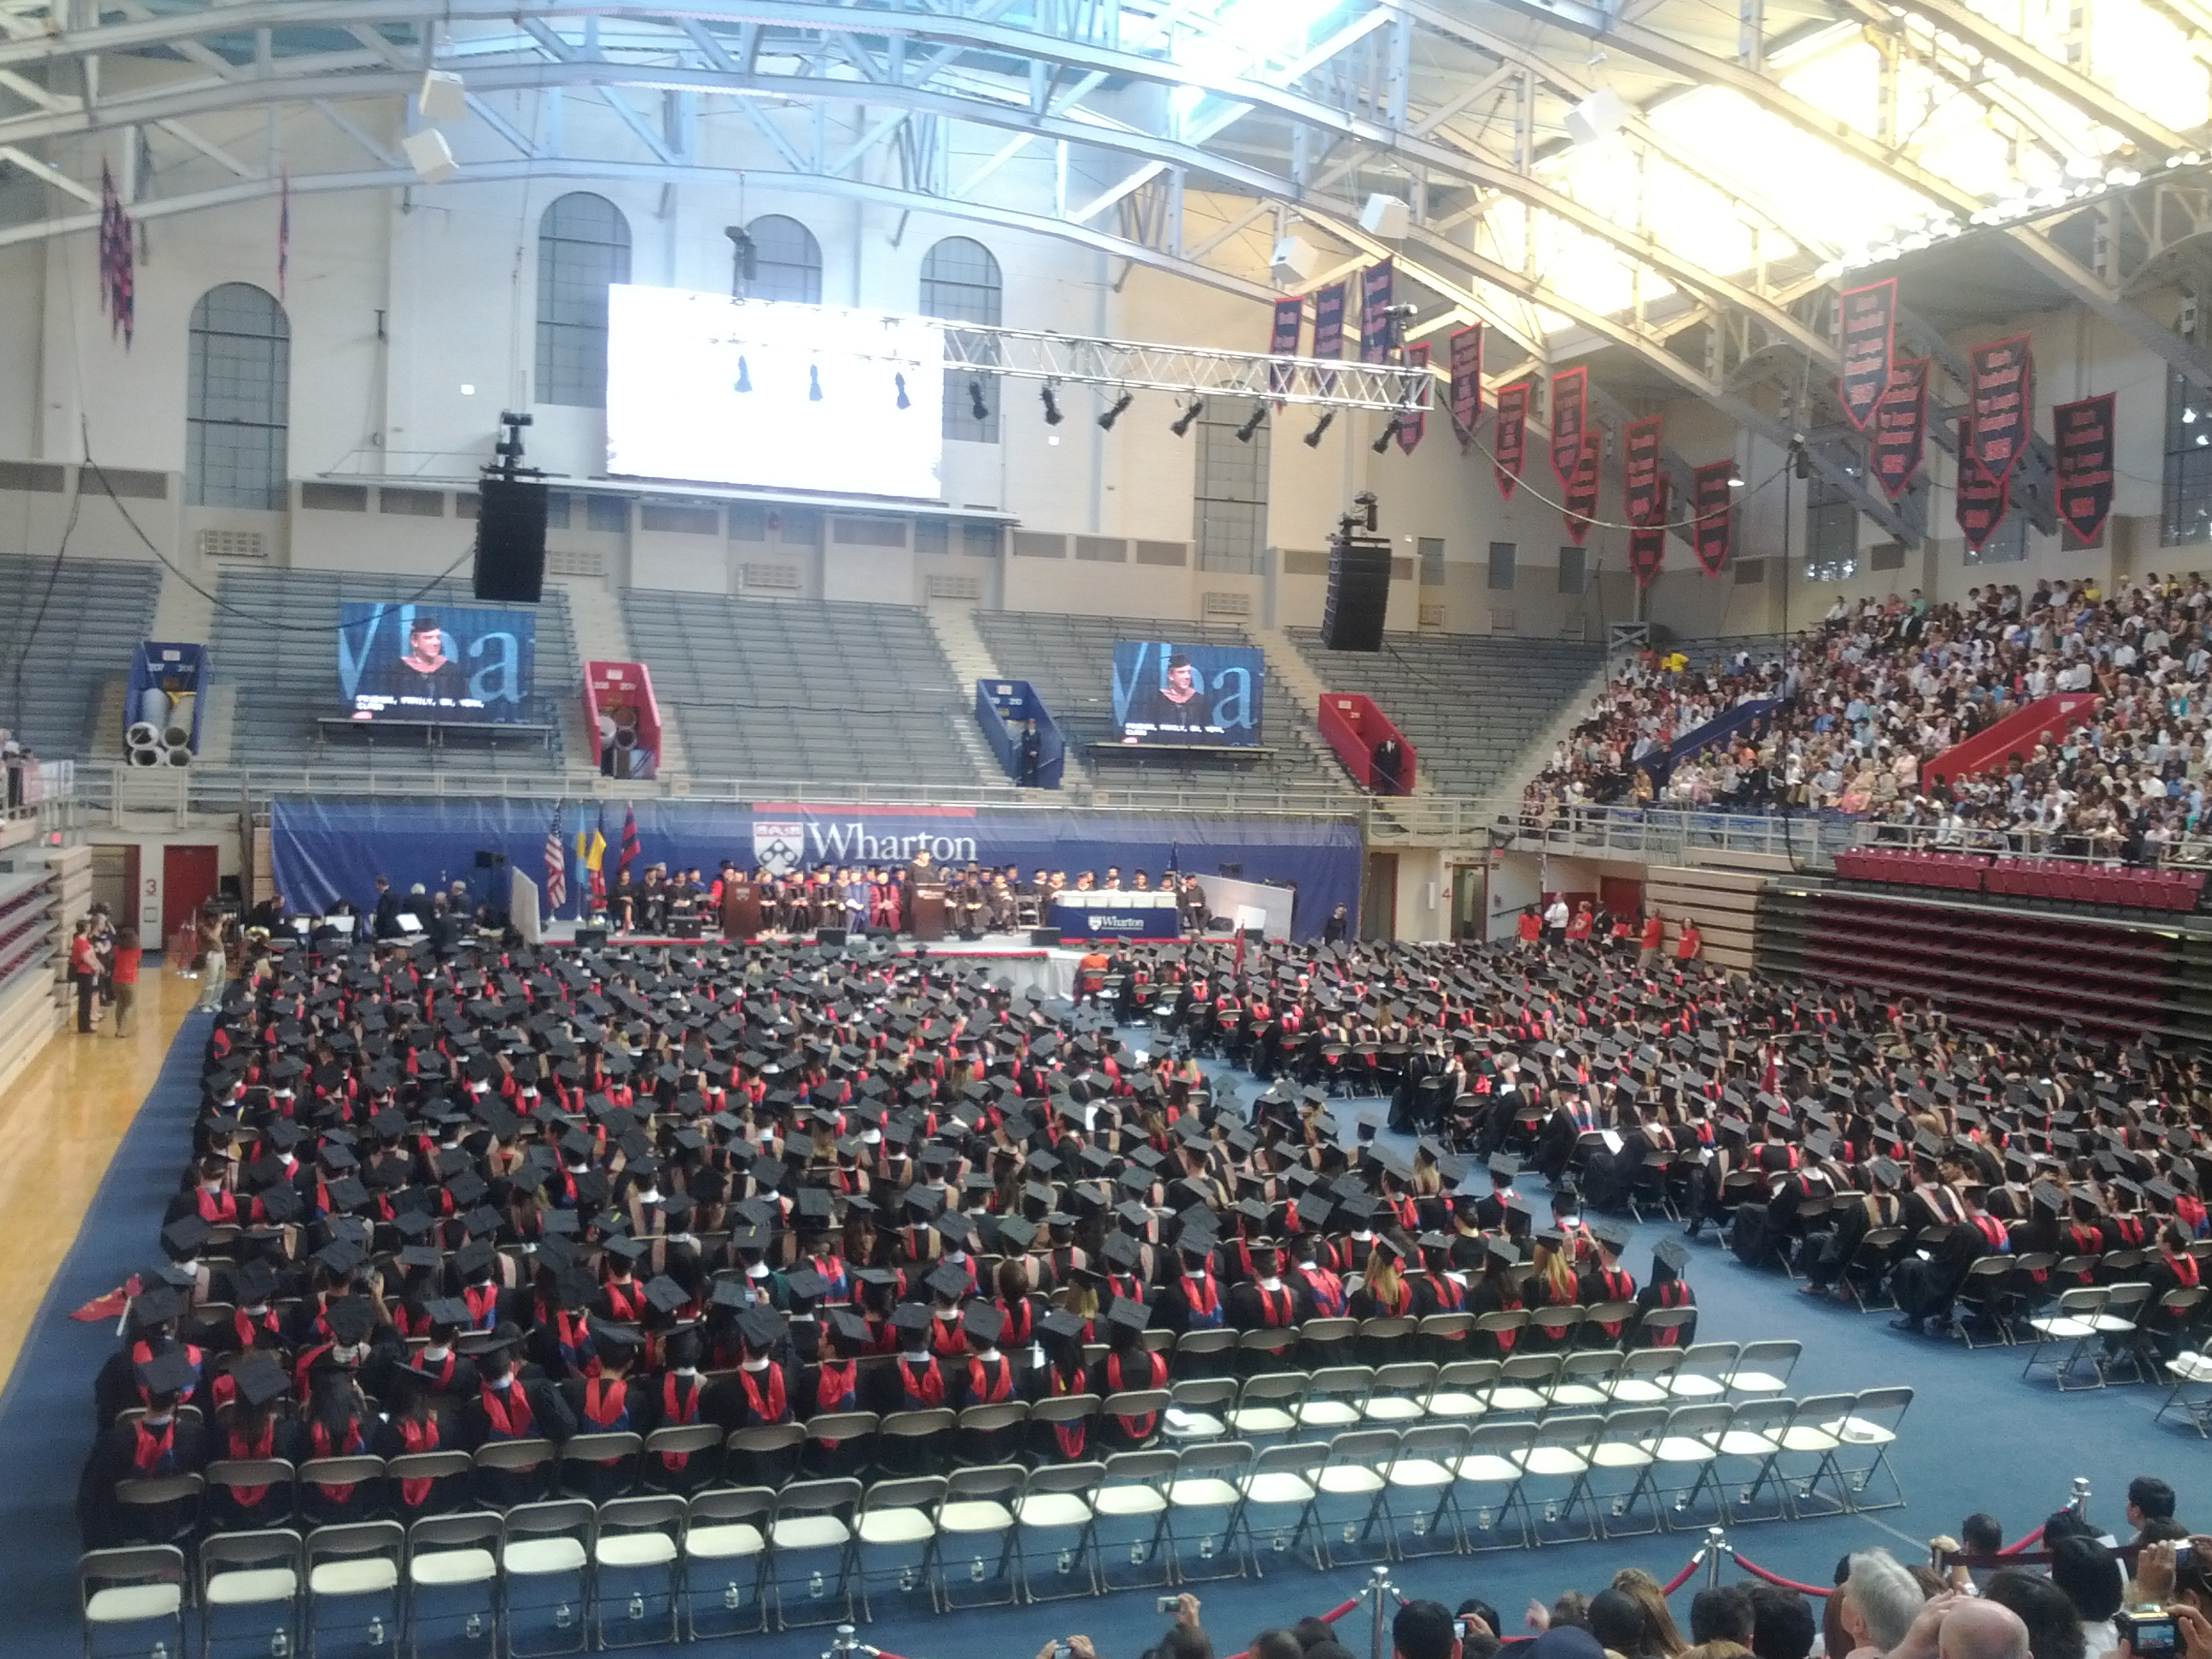 wharton mba graduation in the palestra frankly penn 850 wharton